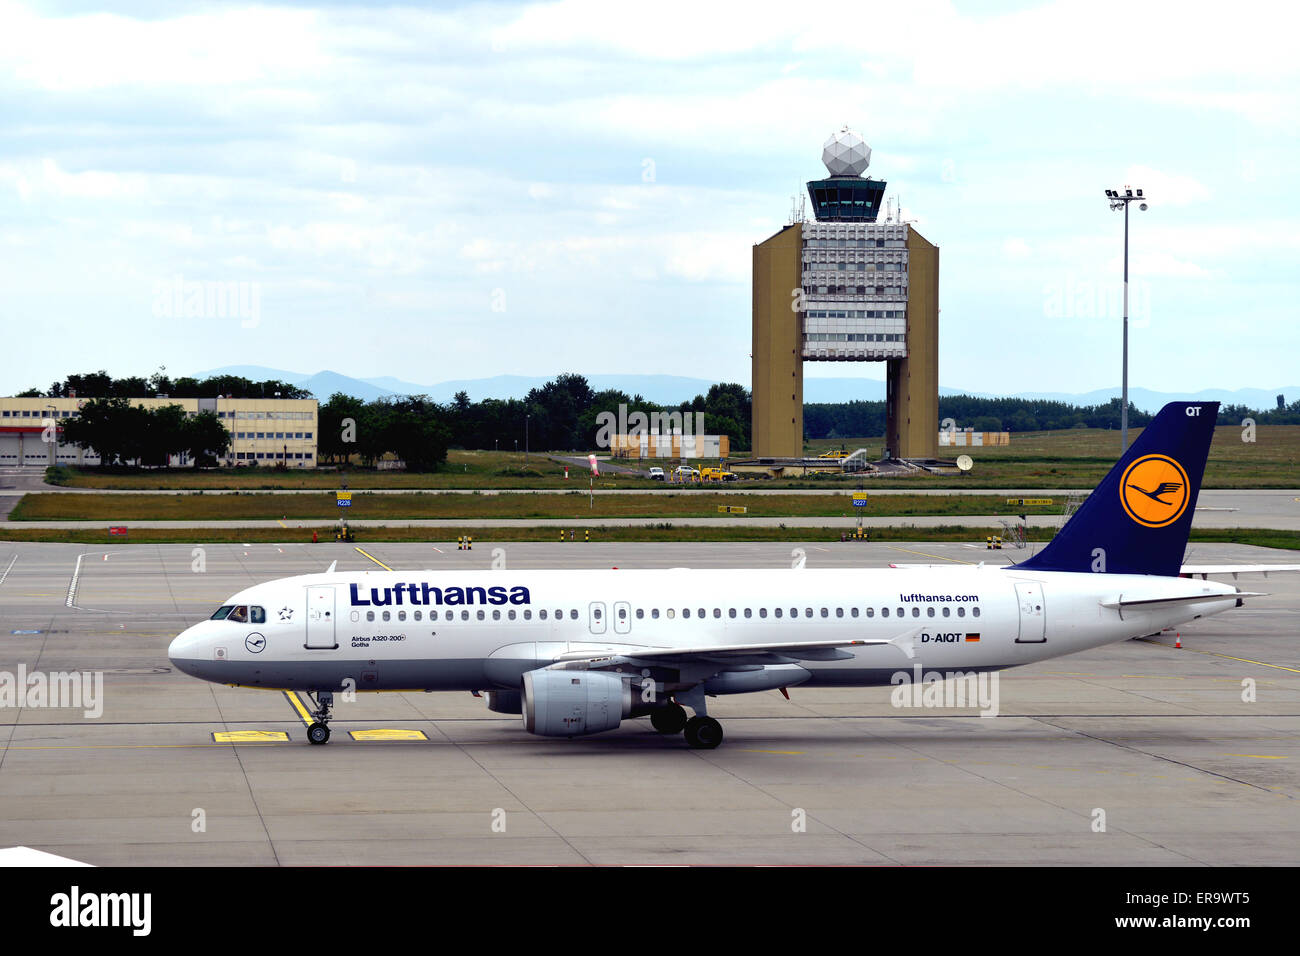 Airbus A320-200 of Lufthansa airways in Ferenc Listz international airport Budapest Hungary - Stock Image